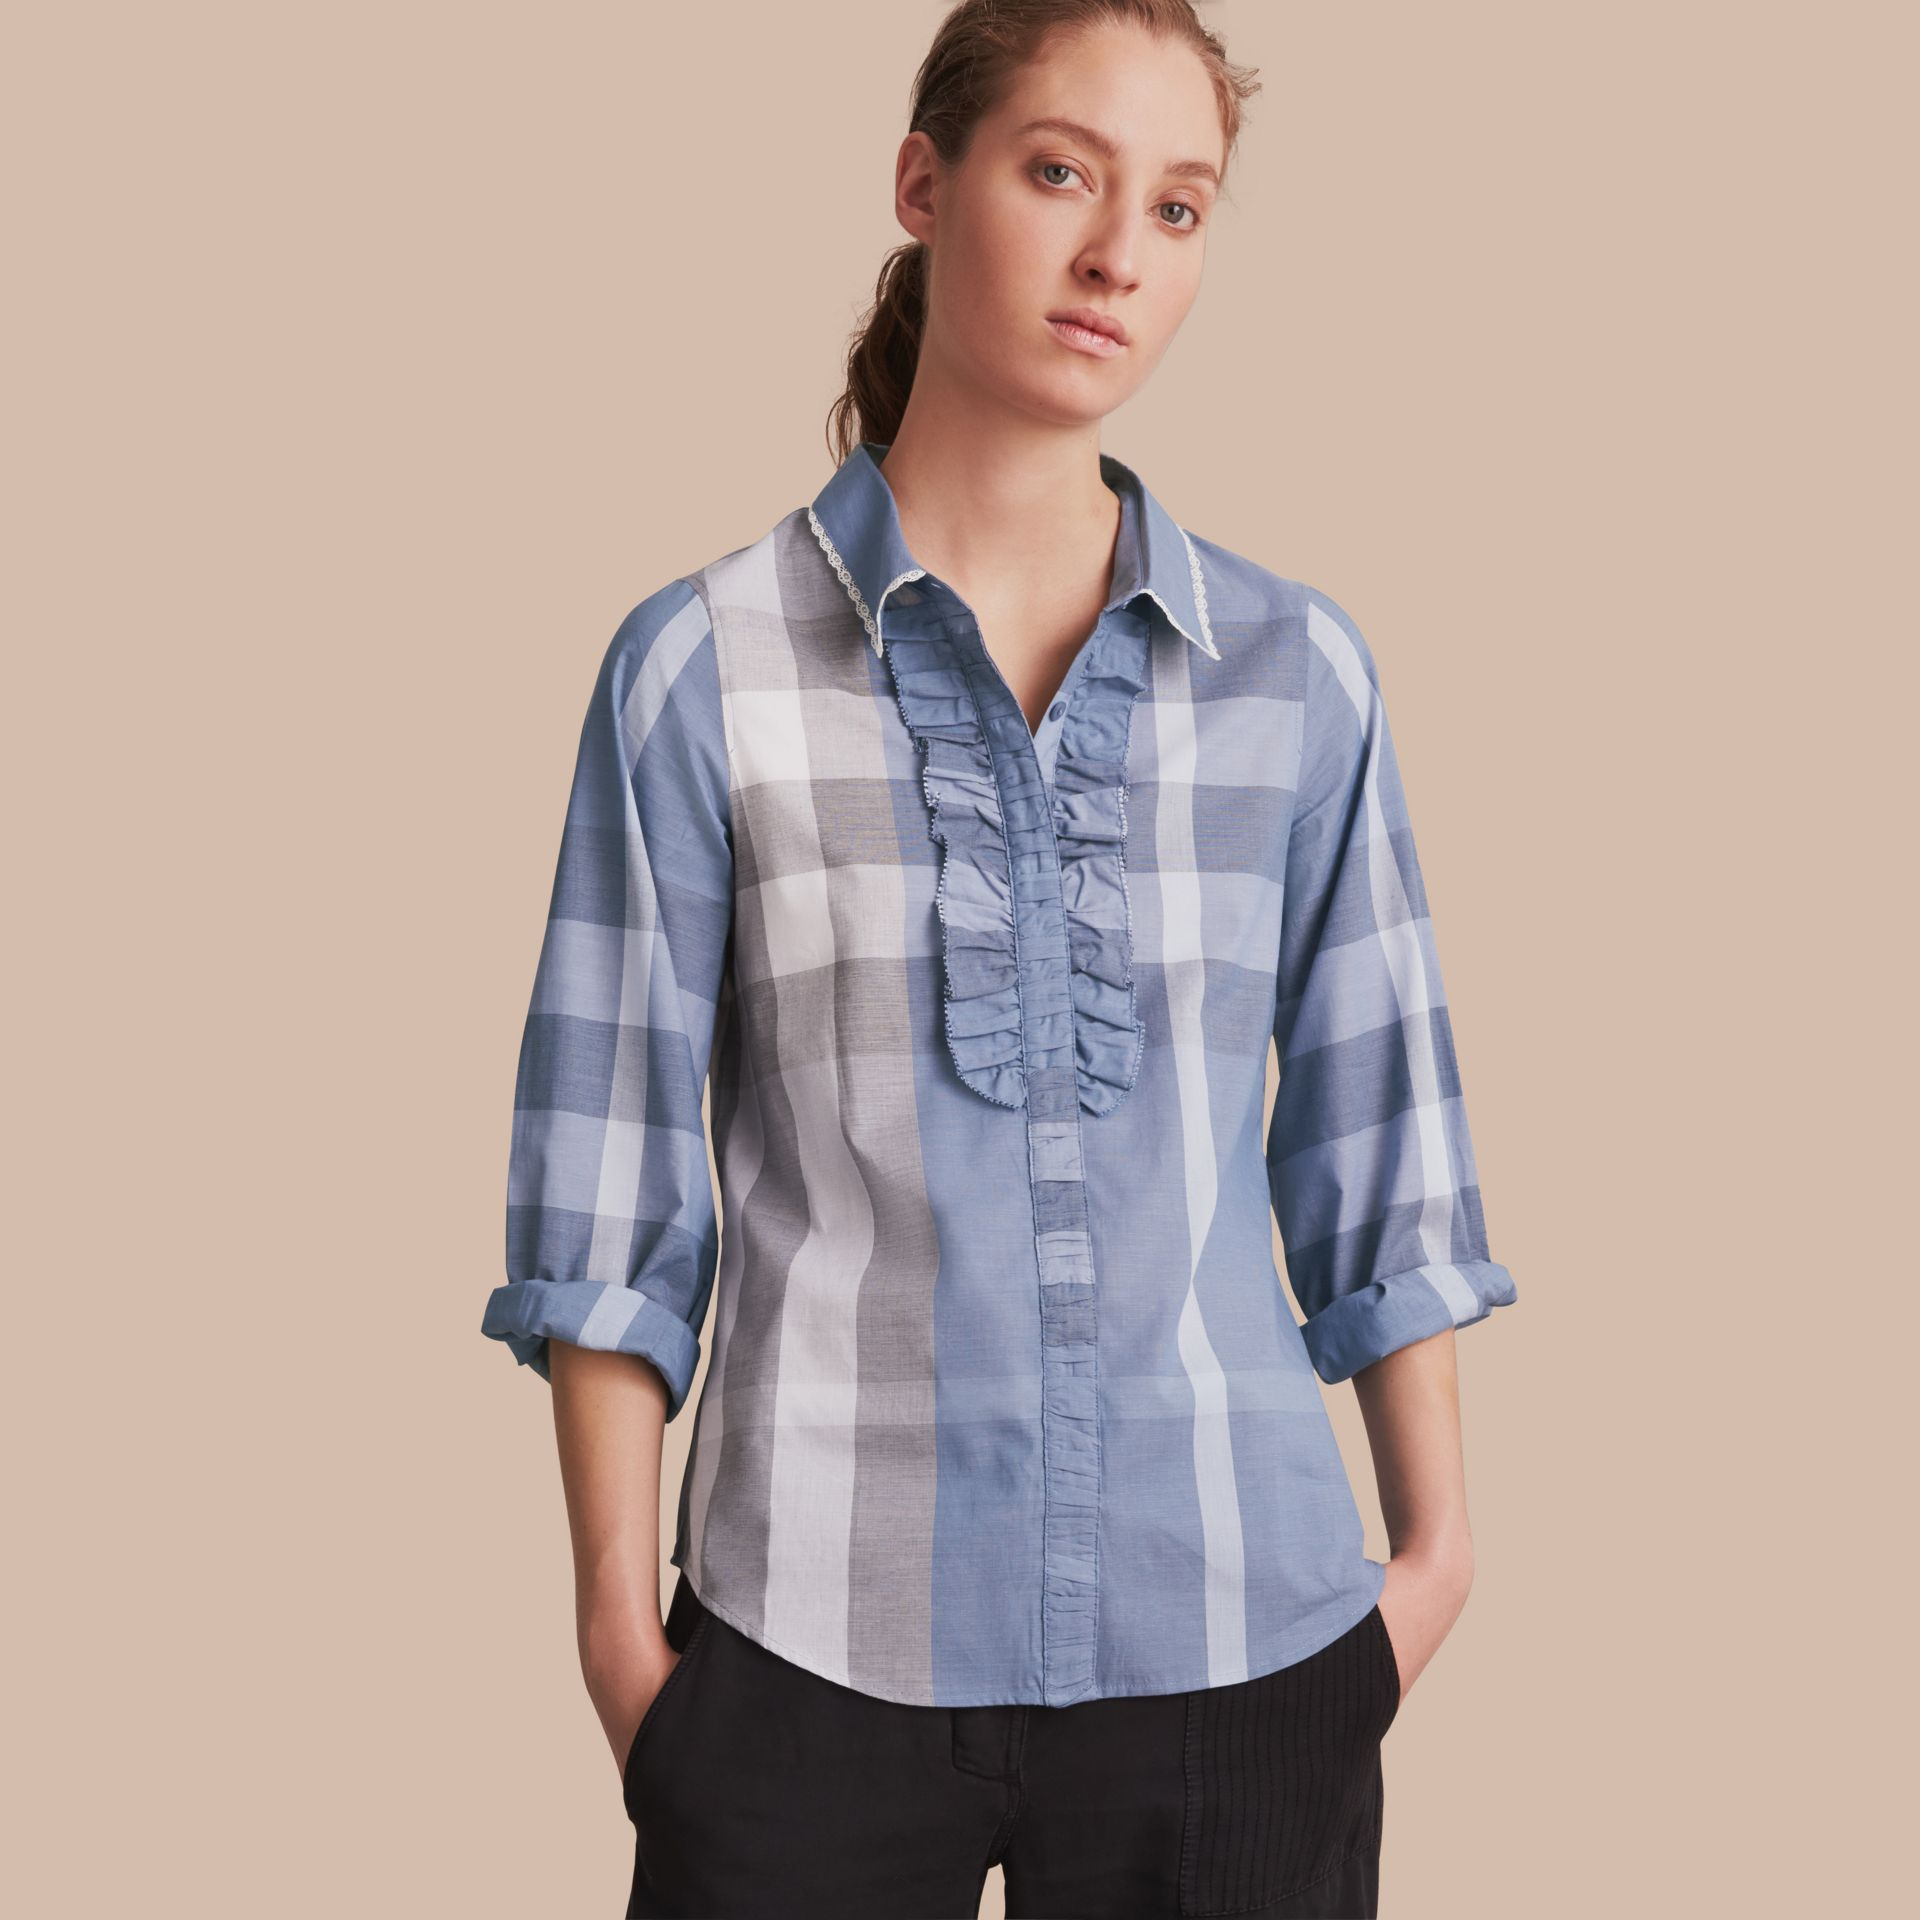 Ruffle Detail and Lace Trim Check Cotton Shirt Canvas Blue - gallery image 1